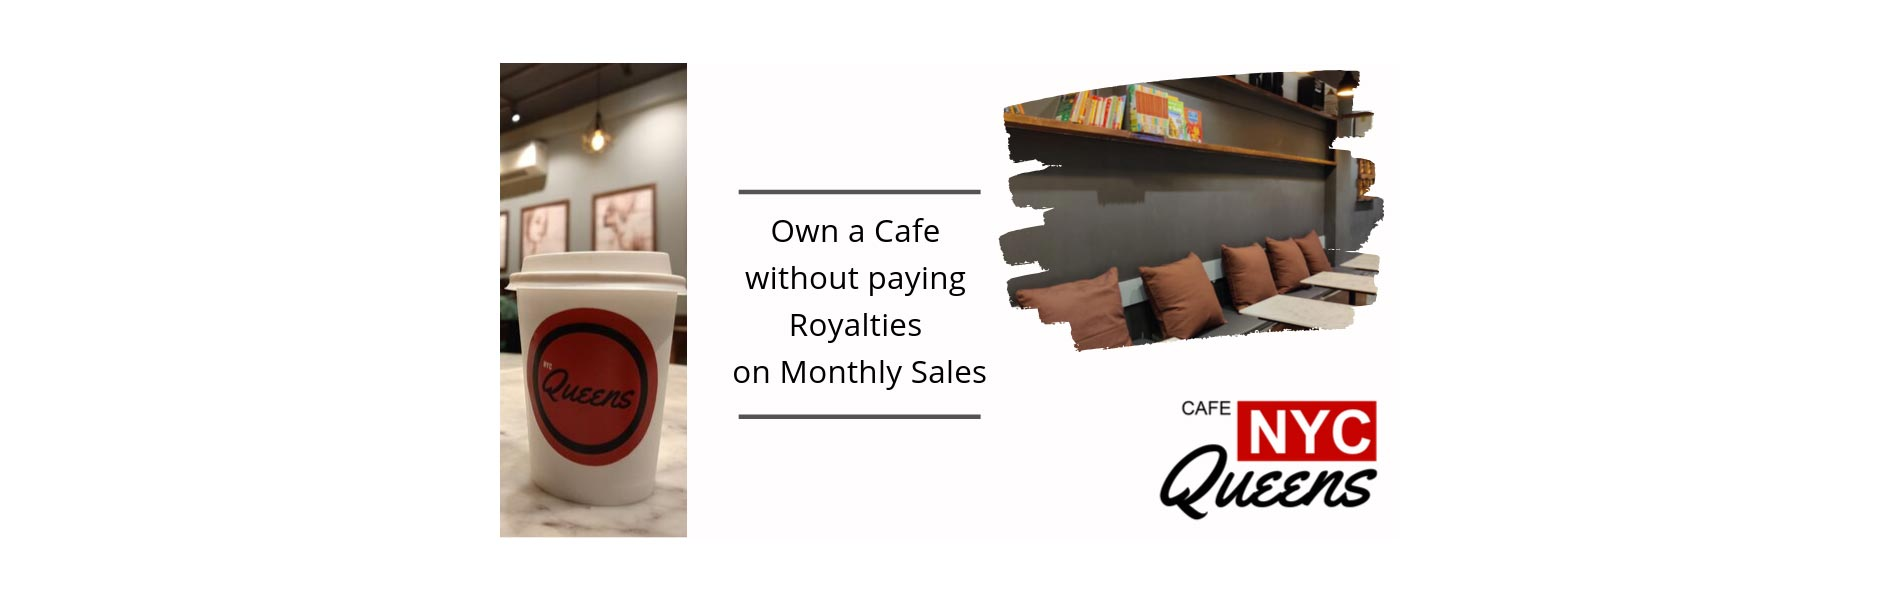 NYC Queens Cafe